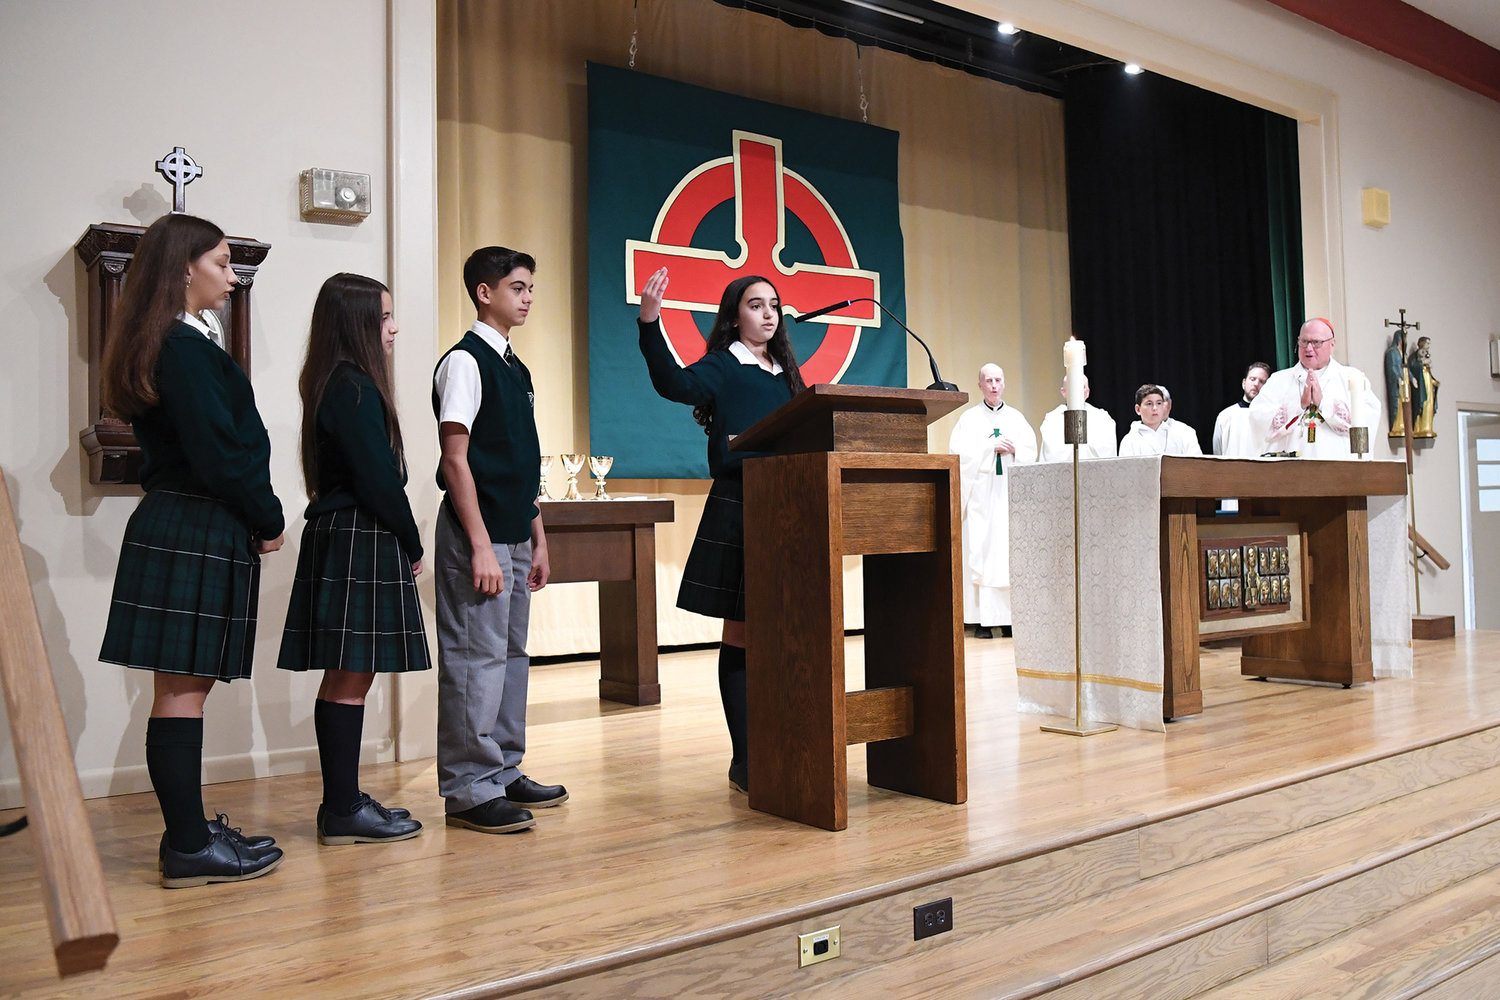 Students from St. Patrick's School on Staten Island present the Prayer of the Faithful at the Oct. 12 vigil Mass Cardinal Dolan offered to mark the school's centennial.